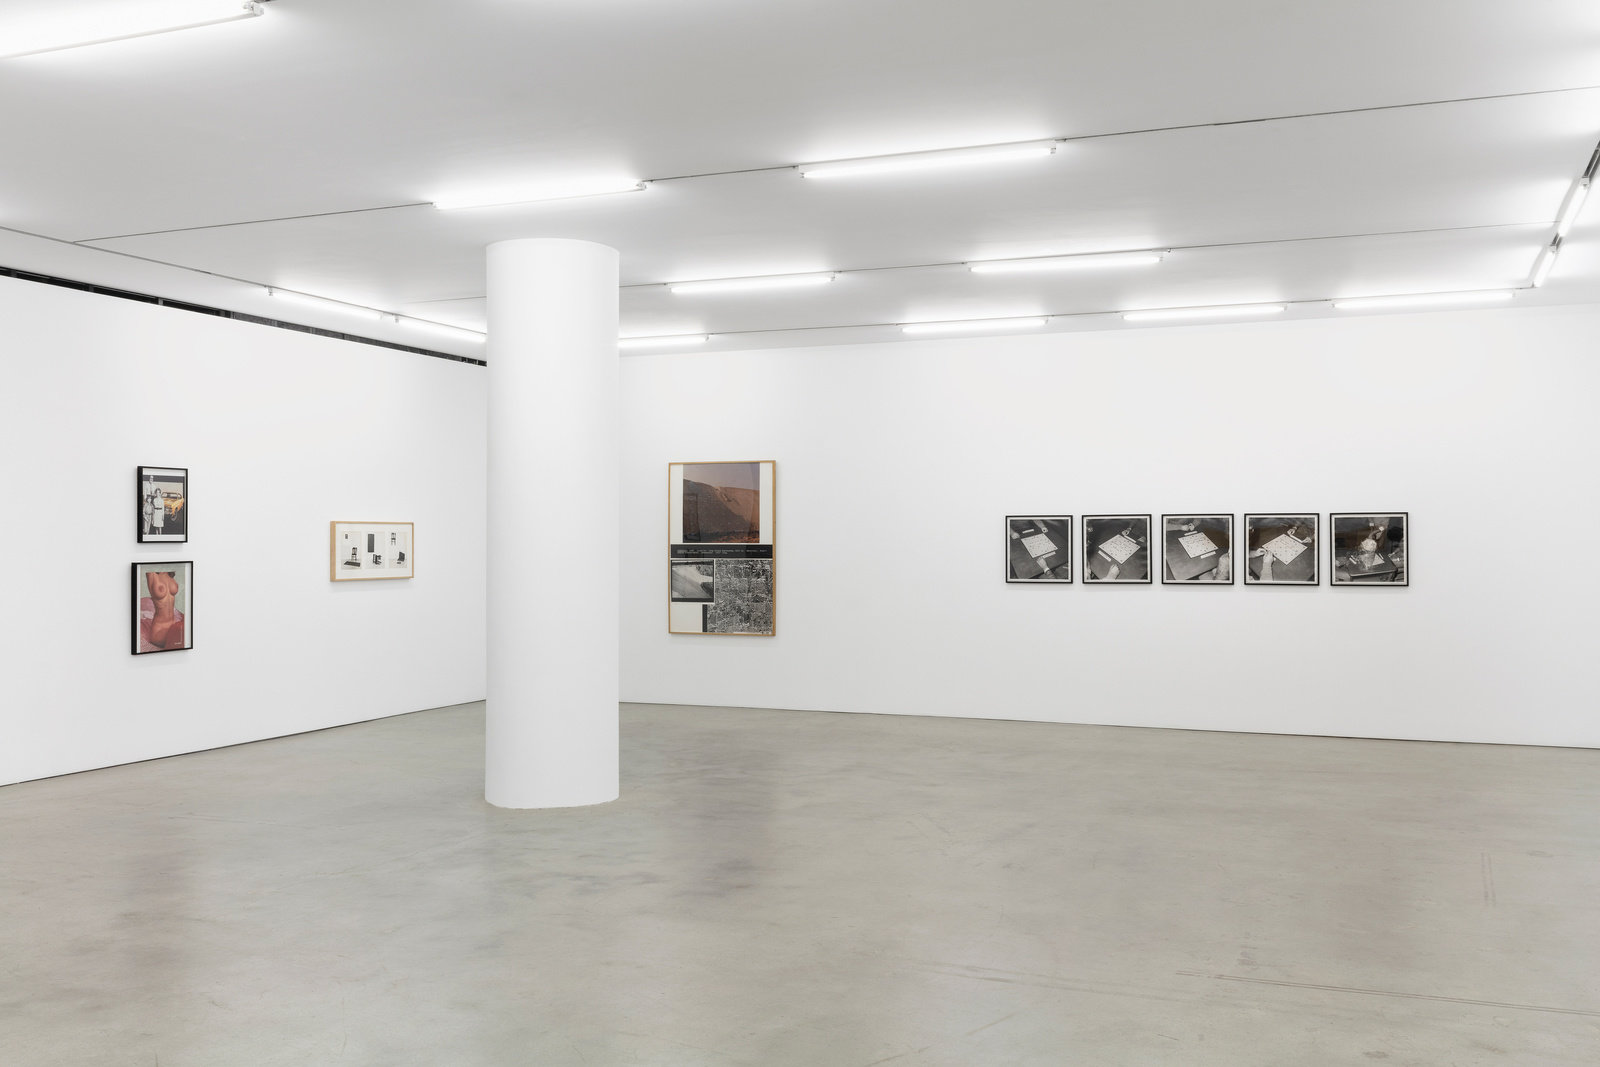 An installation view of four works hung on adjacent gallery walls.